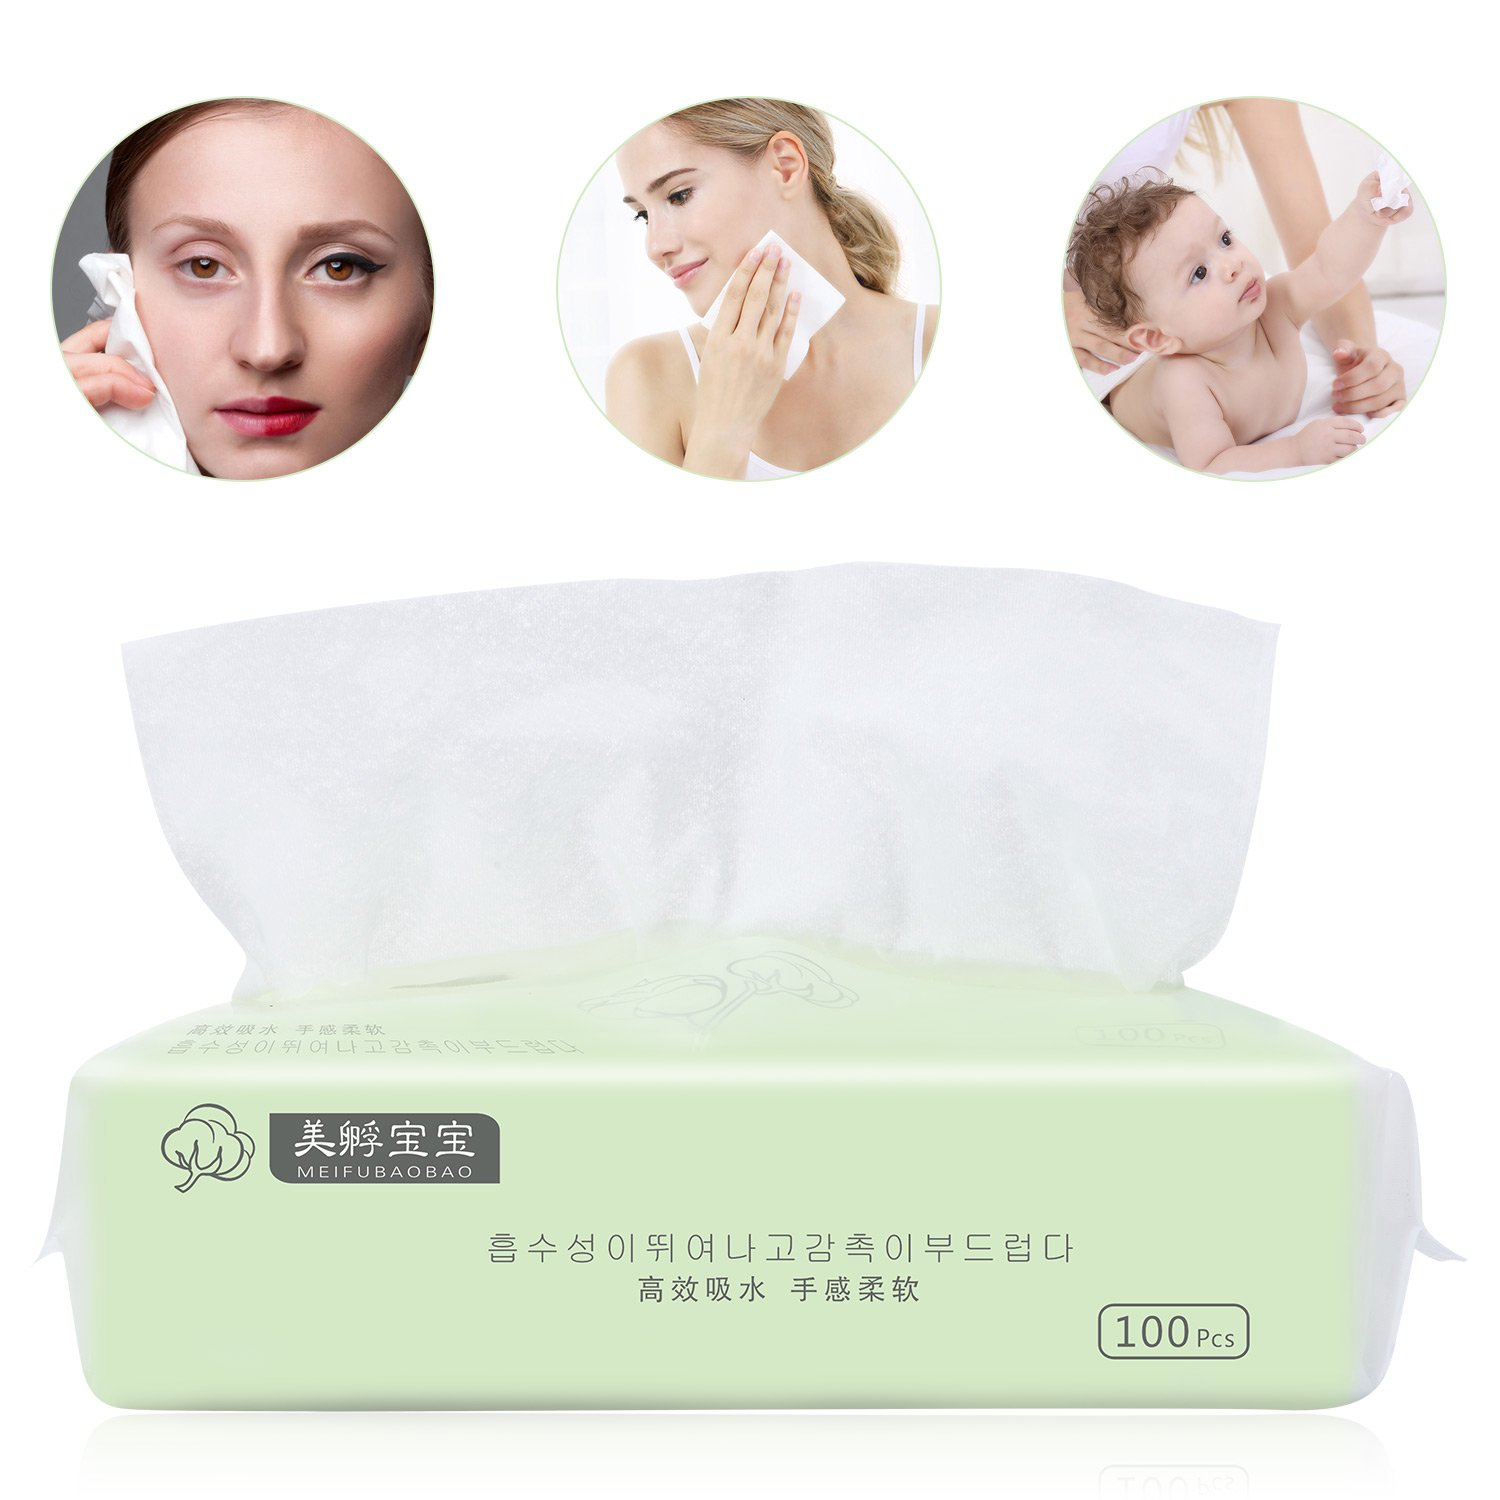 100% Organic Cotton Facial Tissue - Soft&Lint Free Cotton Pad Large (200 x 200 mm) for Removing Face Eye Heavy Makeup, Nail Polish and baby's Delicate Skin Care - Pack of 100pcs.